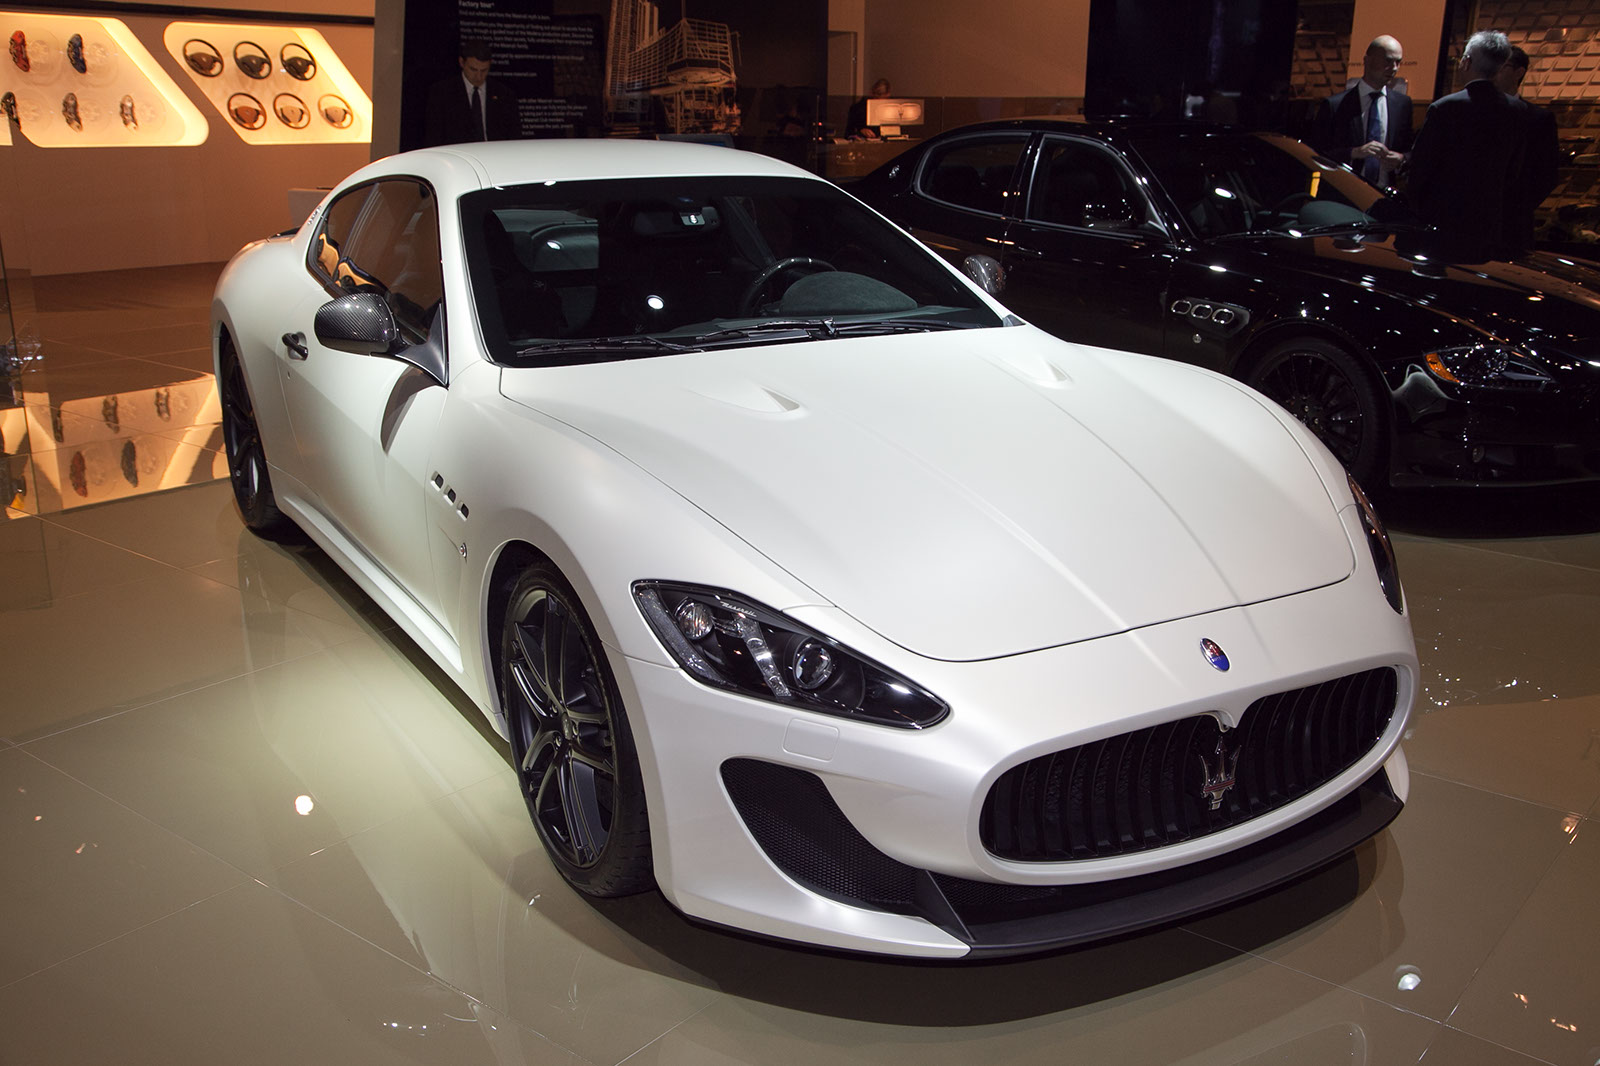 Maserati May Err On The Side Of Of Caution When Choosing Between Luxury And  Speed, But Eventually Speed Loving Fanatics Have No Choice But To Reveal  Their ...